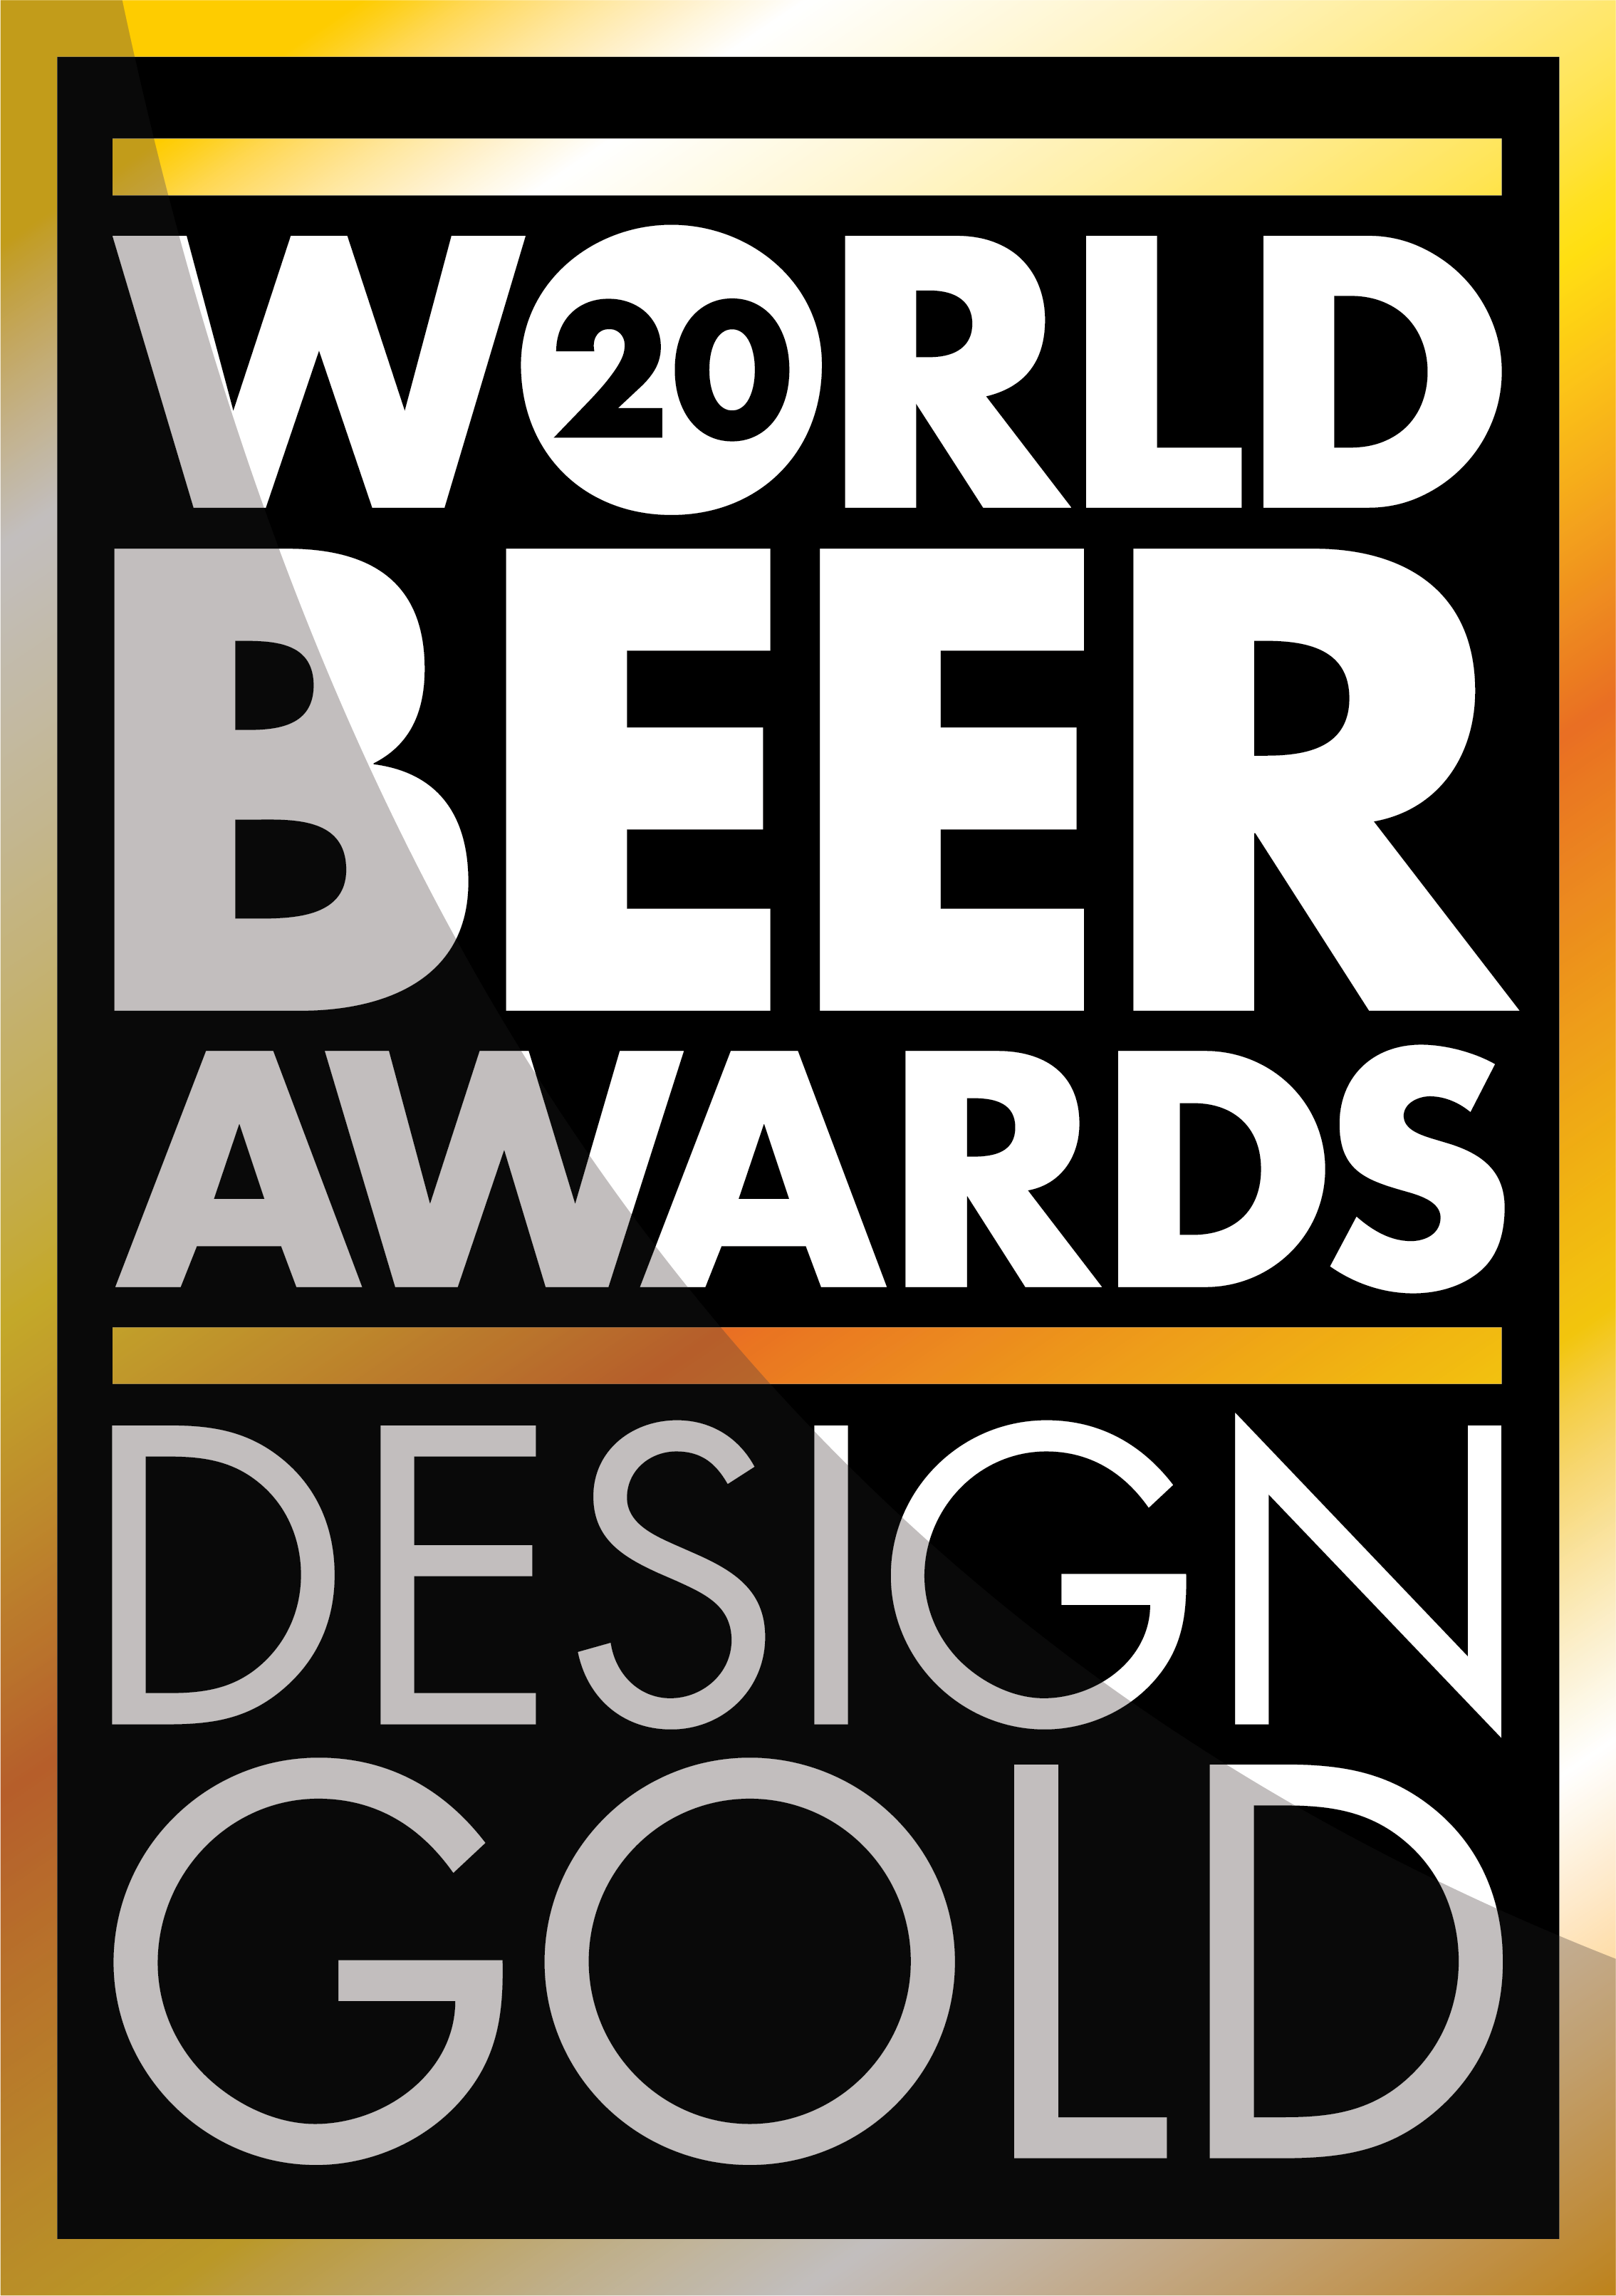 World Beer Awards Gold